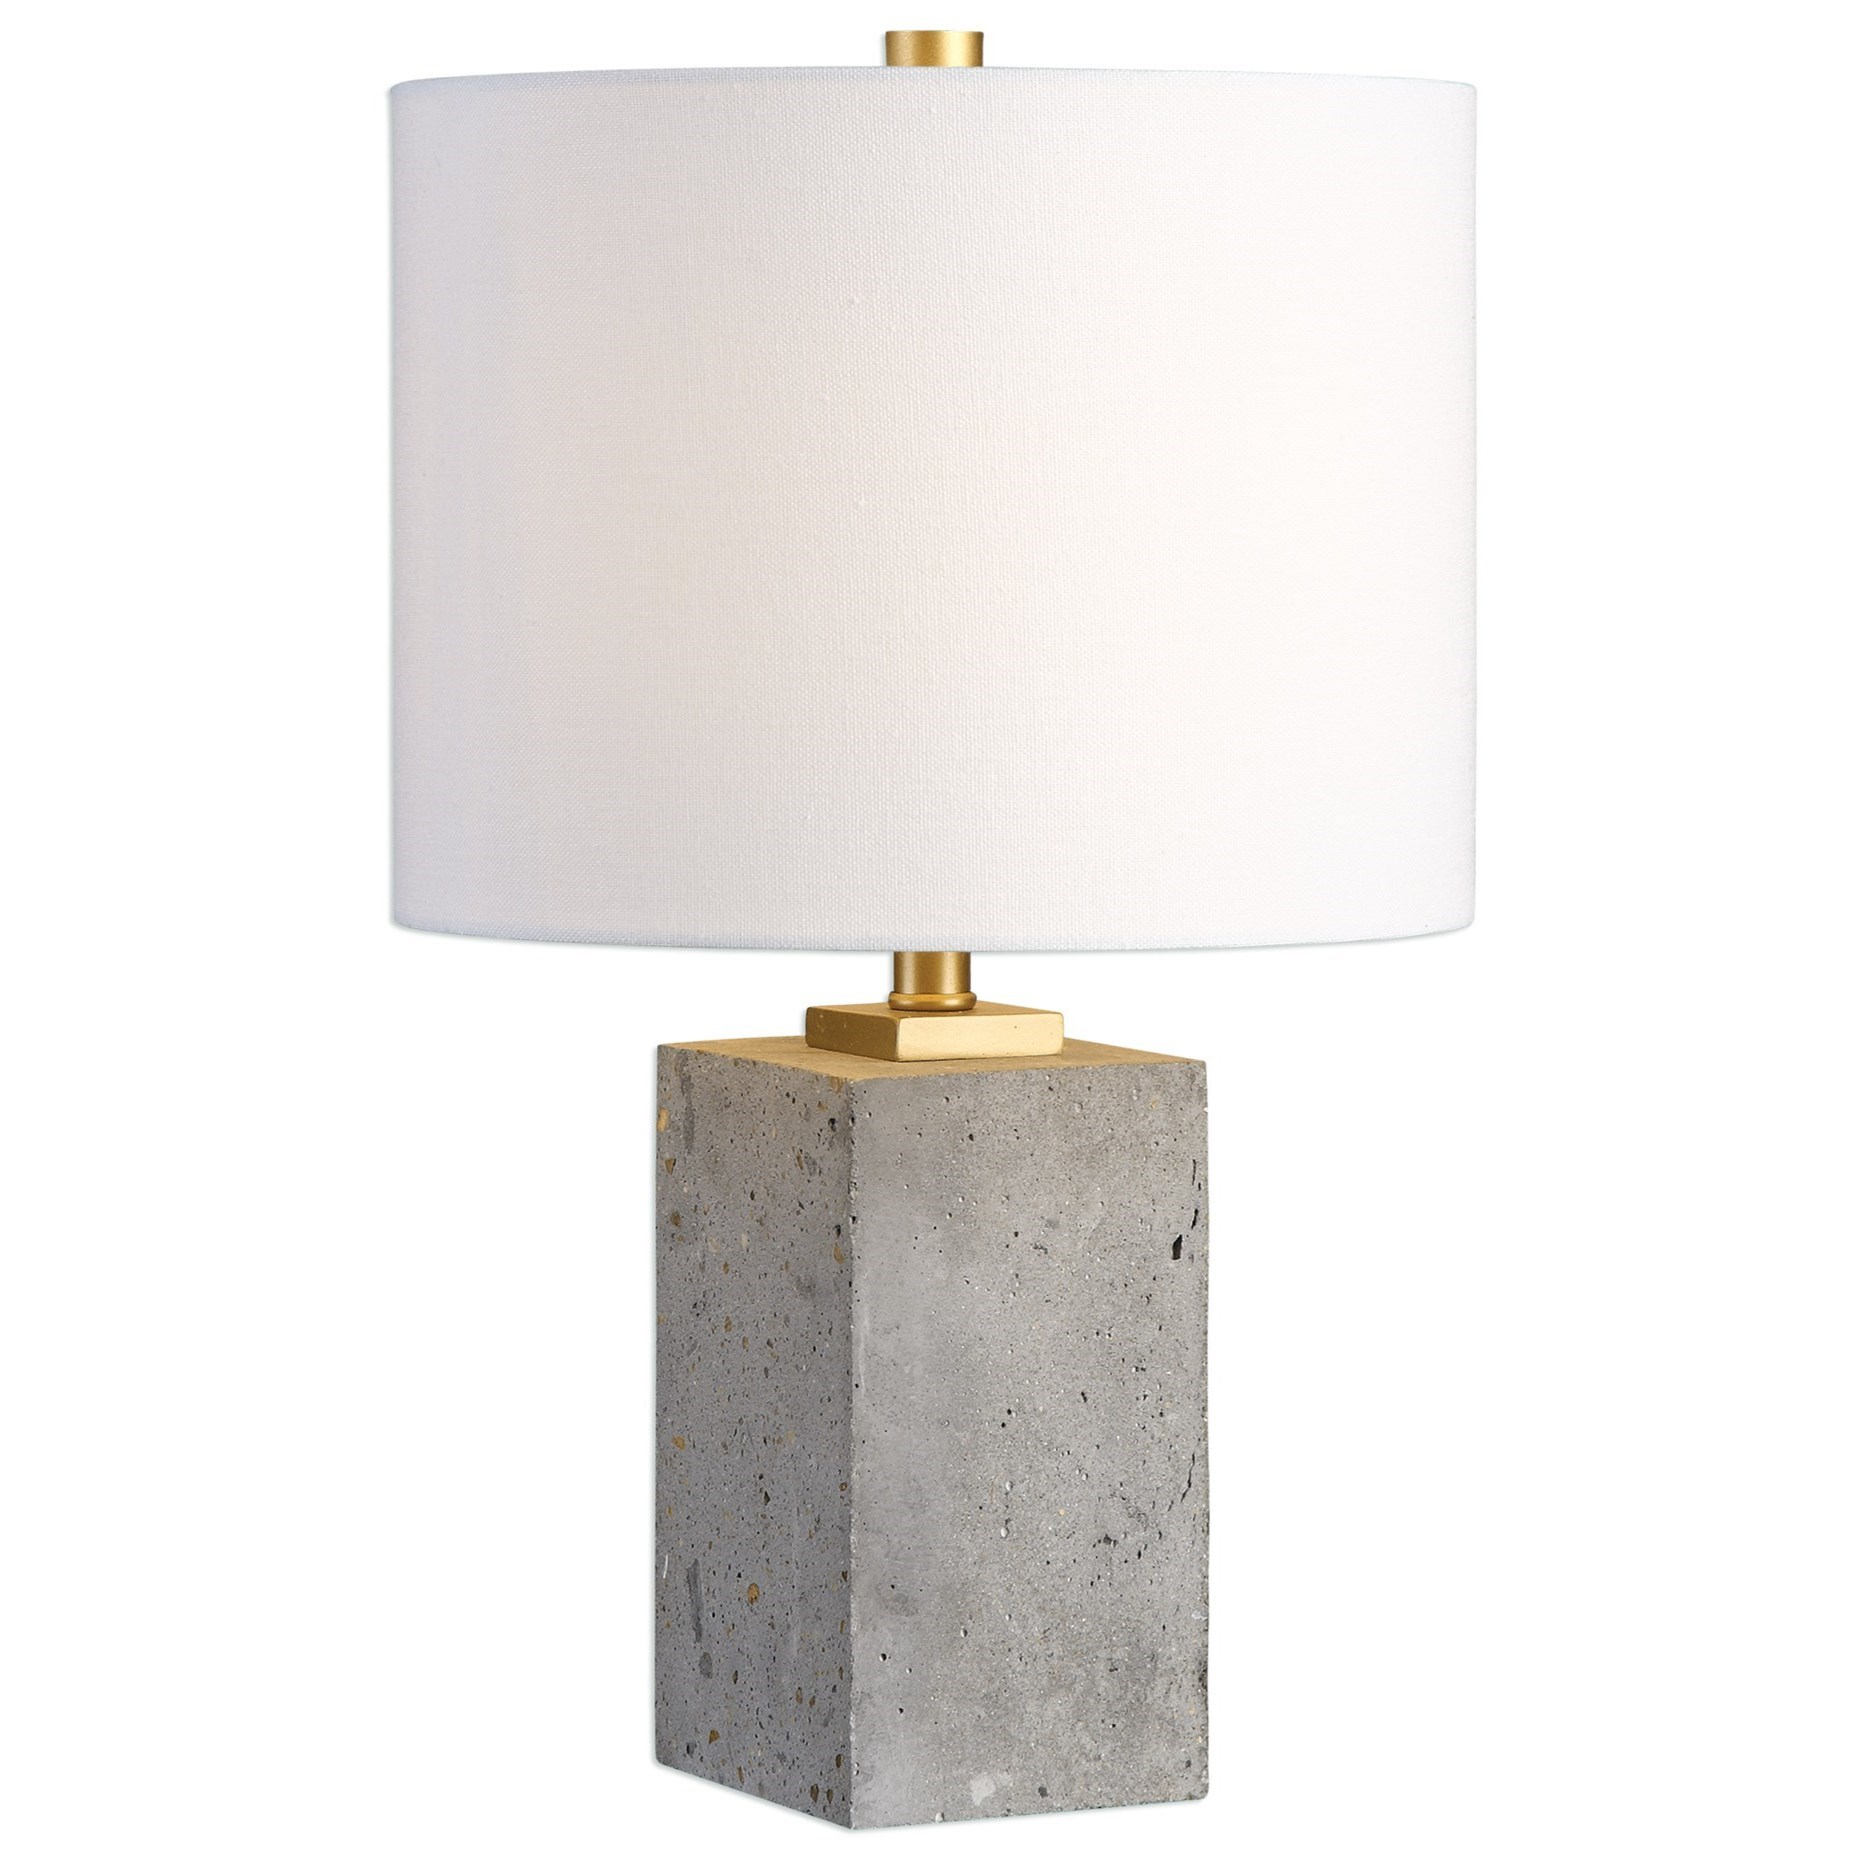 Accent Lamps Drexel Accent Lamp by Uttermost at Suburban Furniture